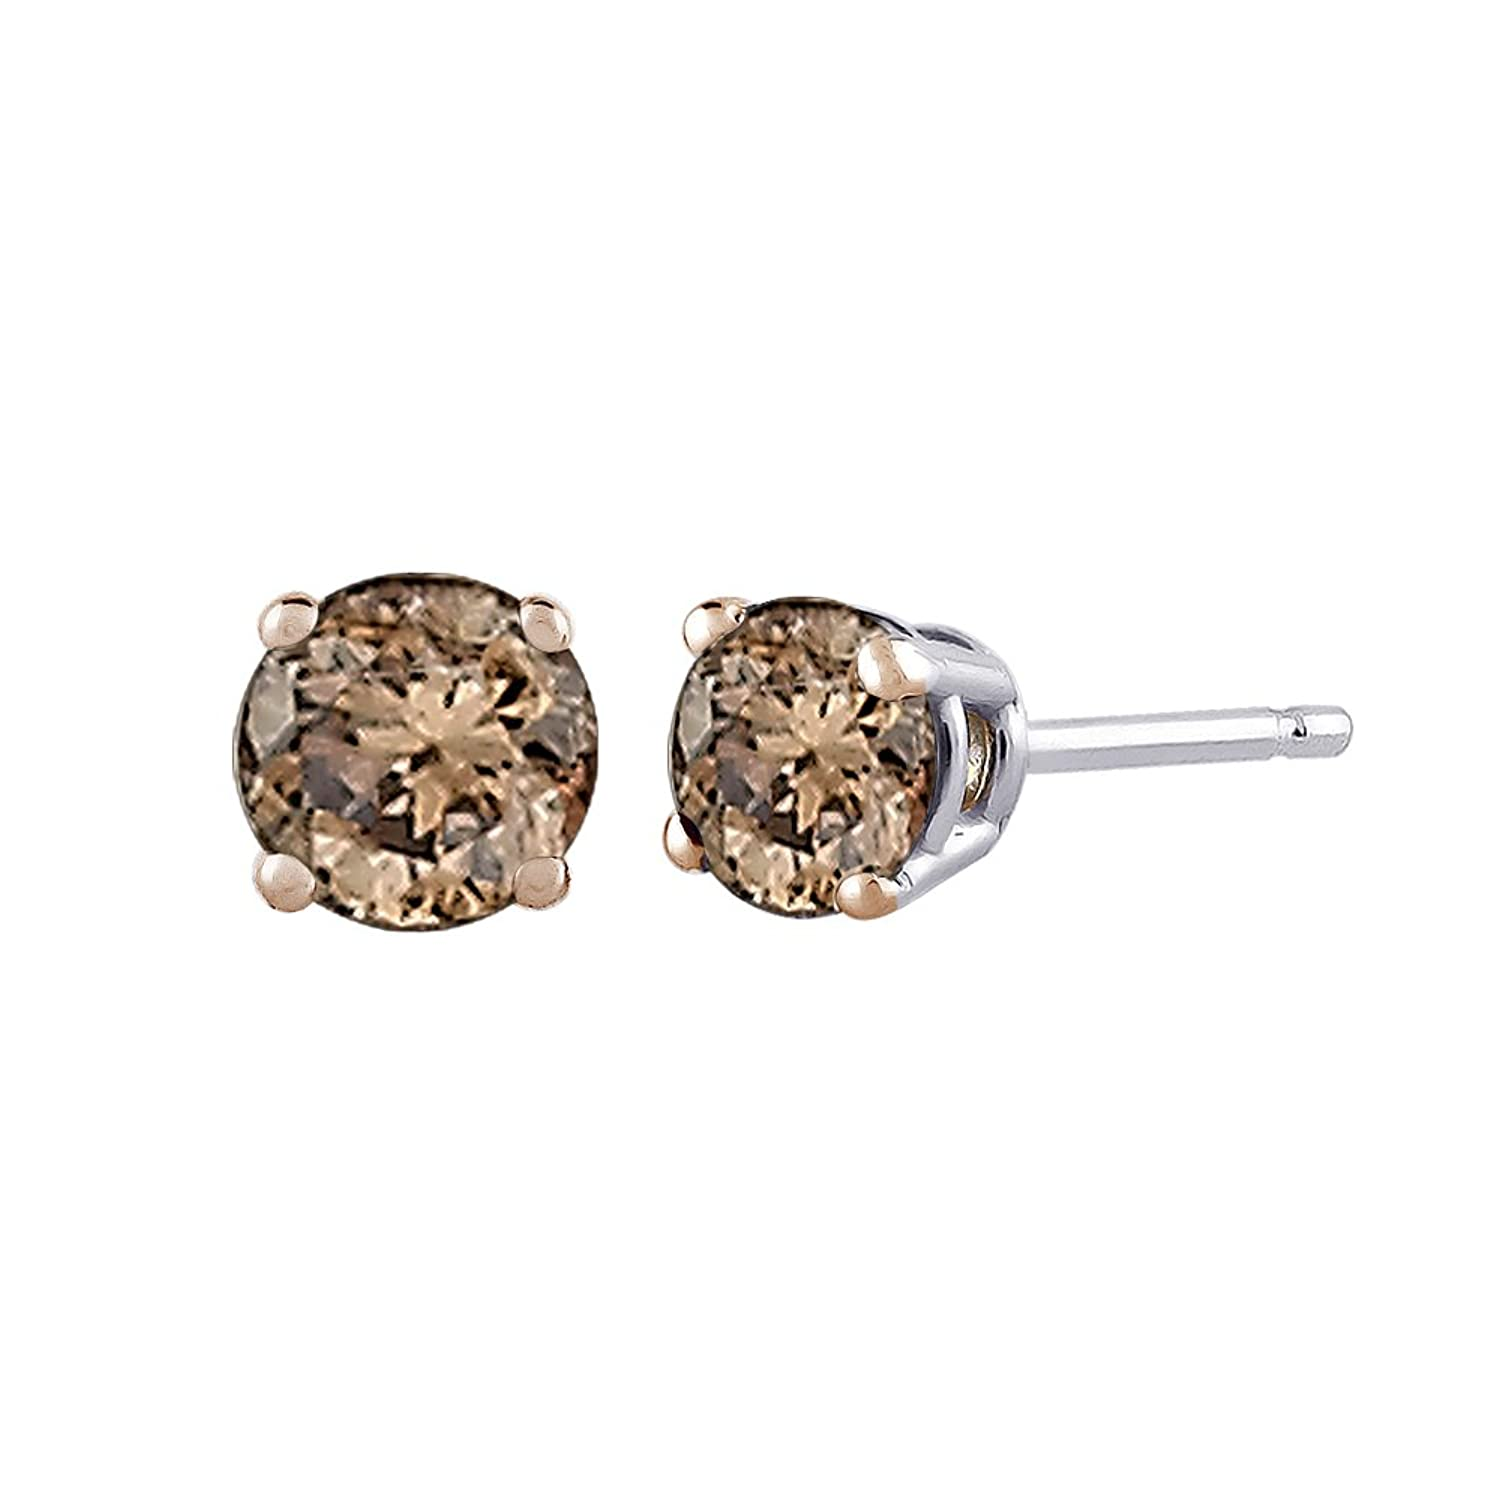 lifestyle gold products chocolate collections original stud rose diamond image cognac studs earrings online dfine